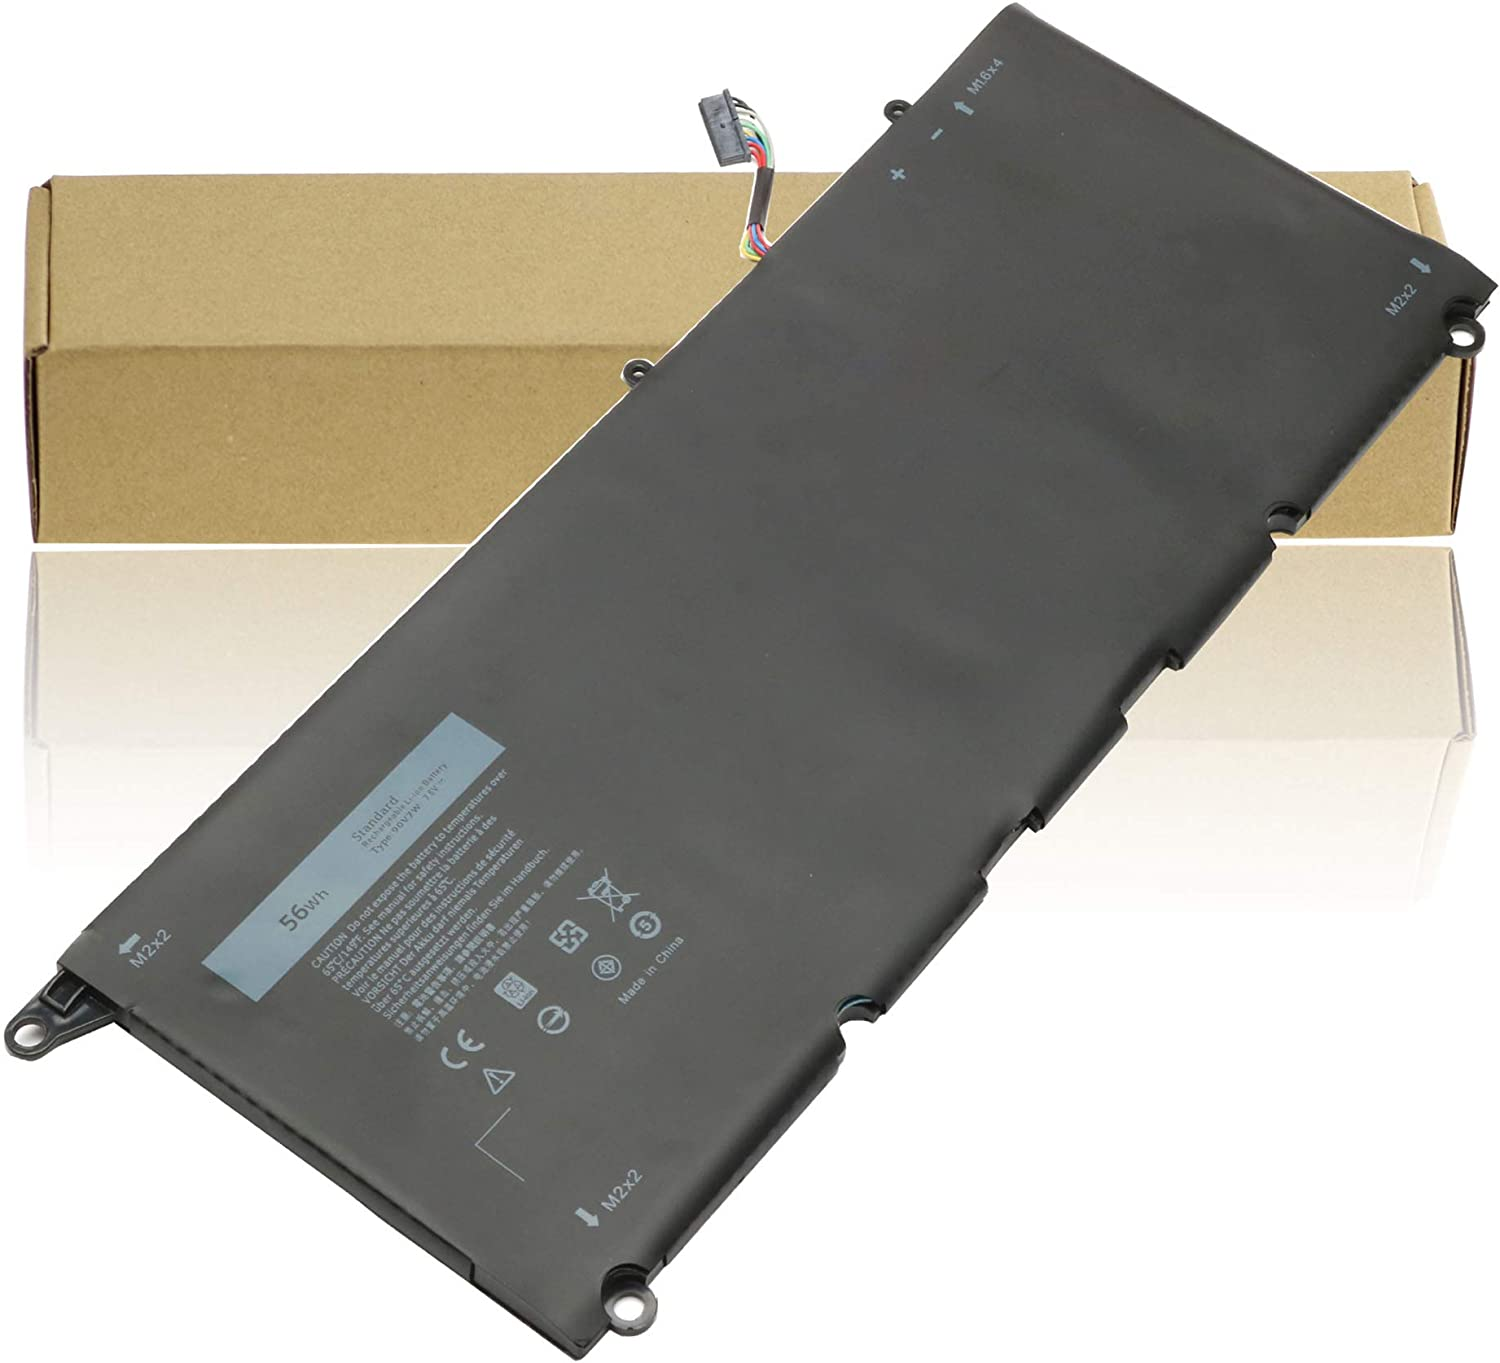 JD25G 90V7W Laptop Battery Compatible with Dell XPS 13 9343 9350 13D-9343 5K9CP DIN02 0DRRP JHXPY 0N7T6 RWT1R 13D-9343-1808T Notebook Battery 56WH 7.6V 4-Cell